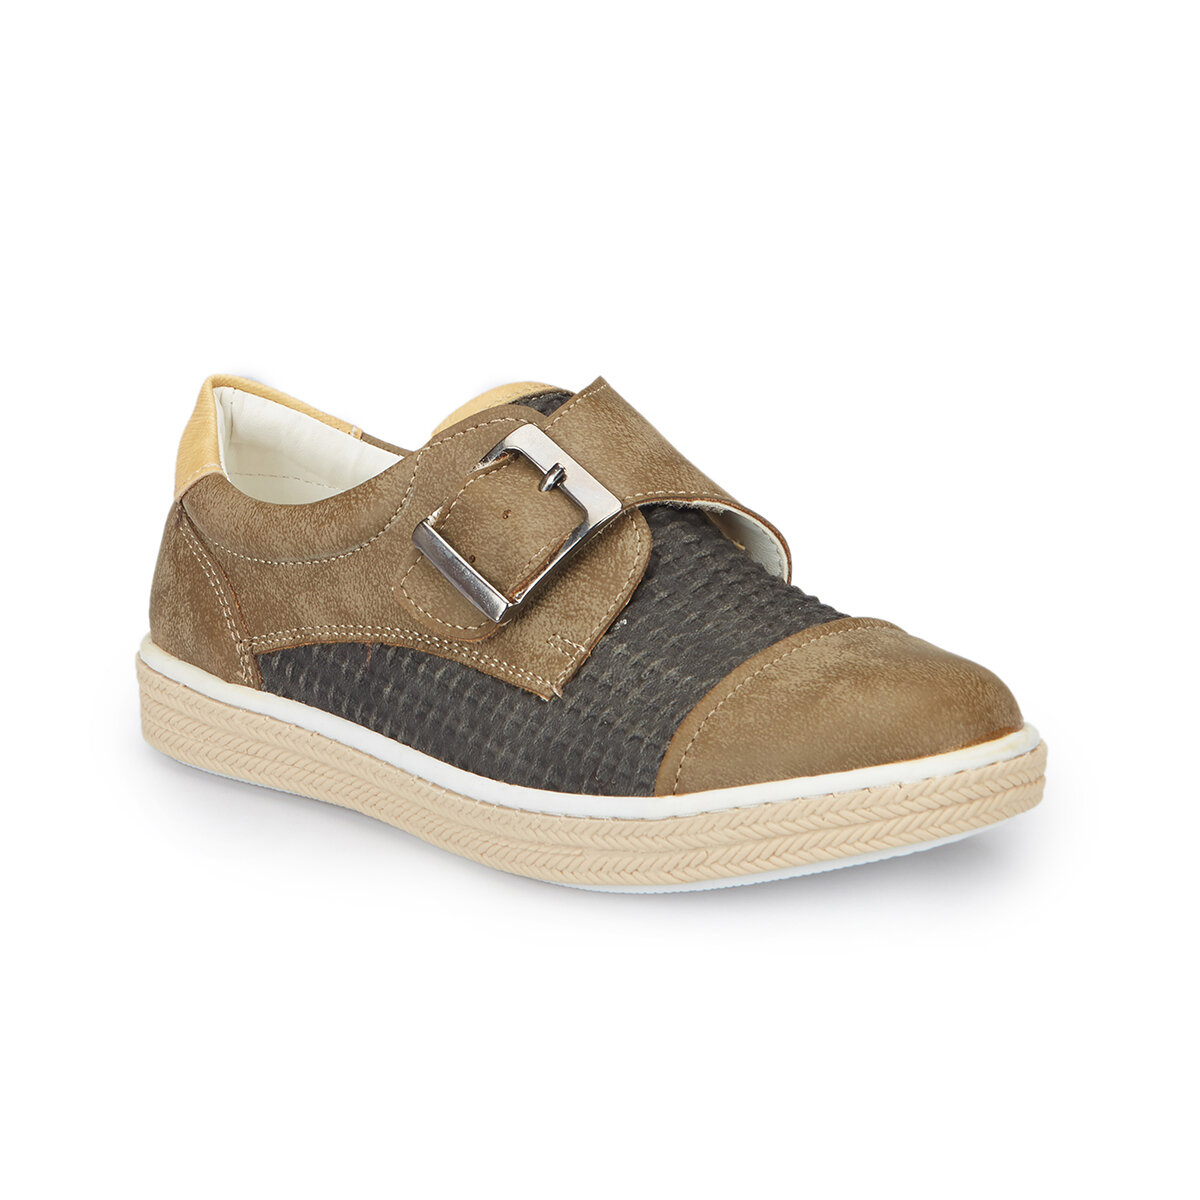 FLO 81.510227.F Sand Color Male Child Shoes Polaris